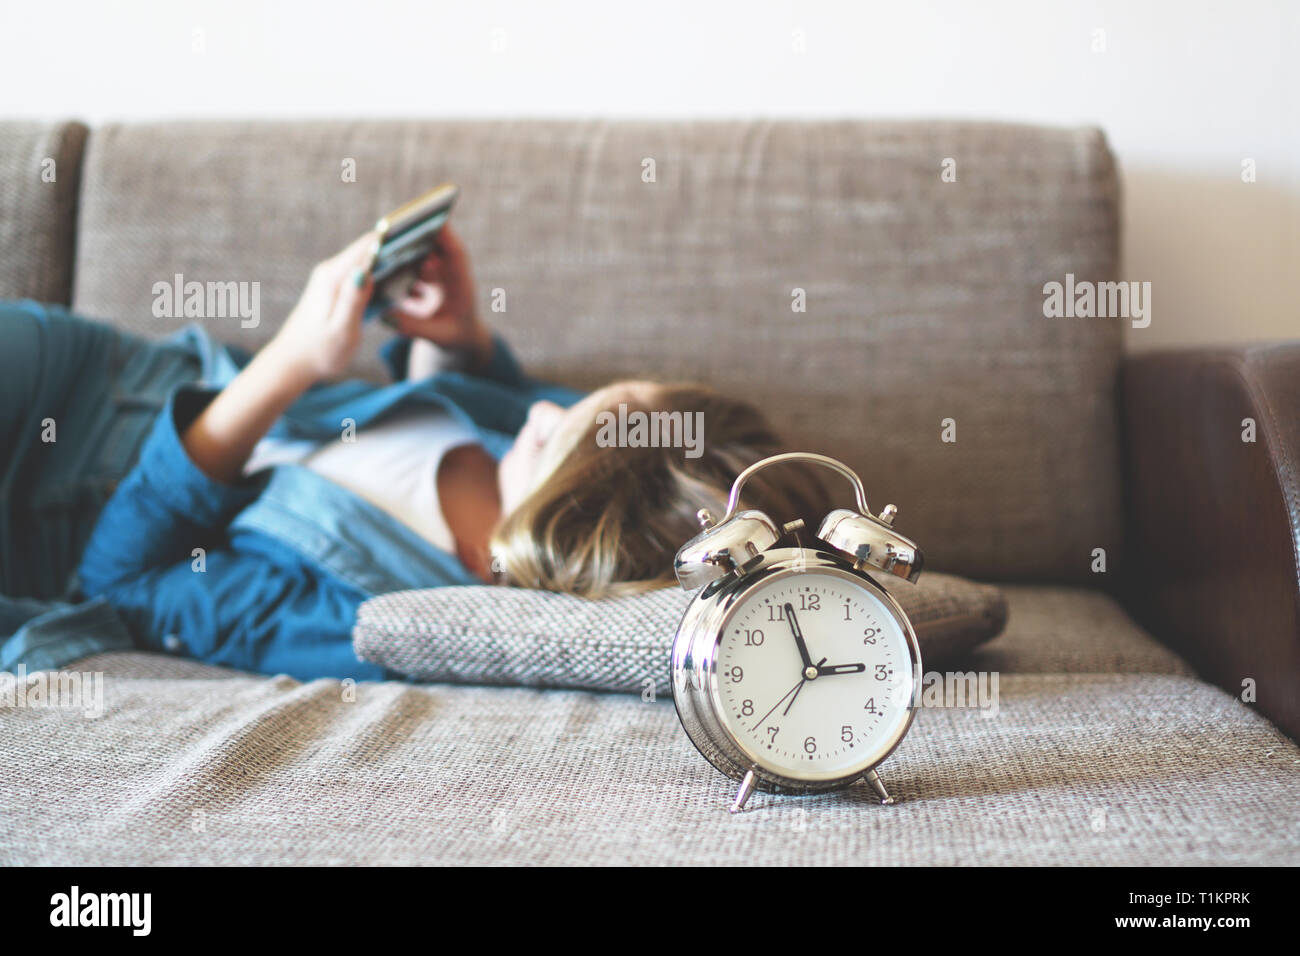 Young woman using phone in bed, looking at screen, insomnia, check time, wake up with smartphone, mobile phone addiction - alarm clock near - Stock Image